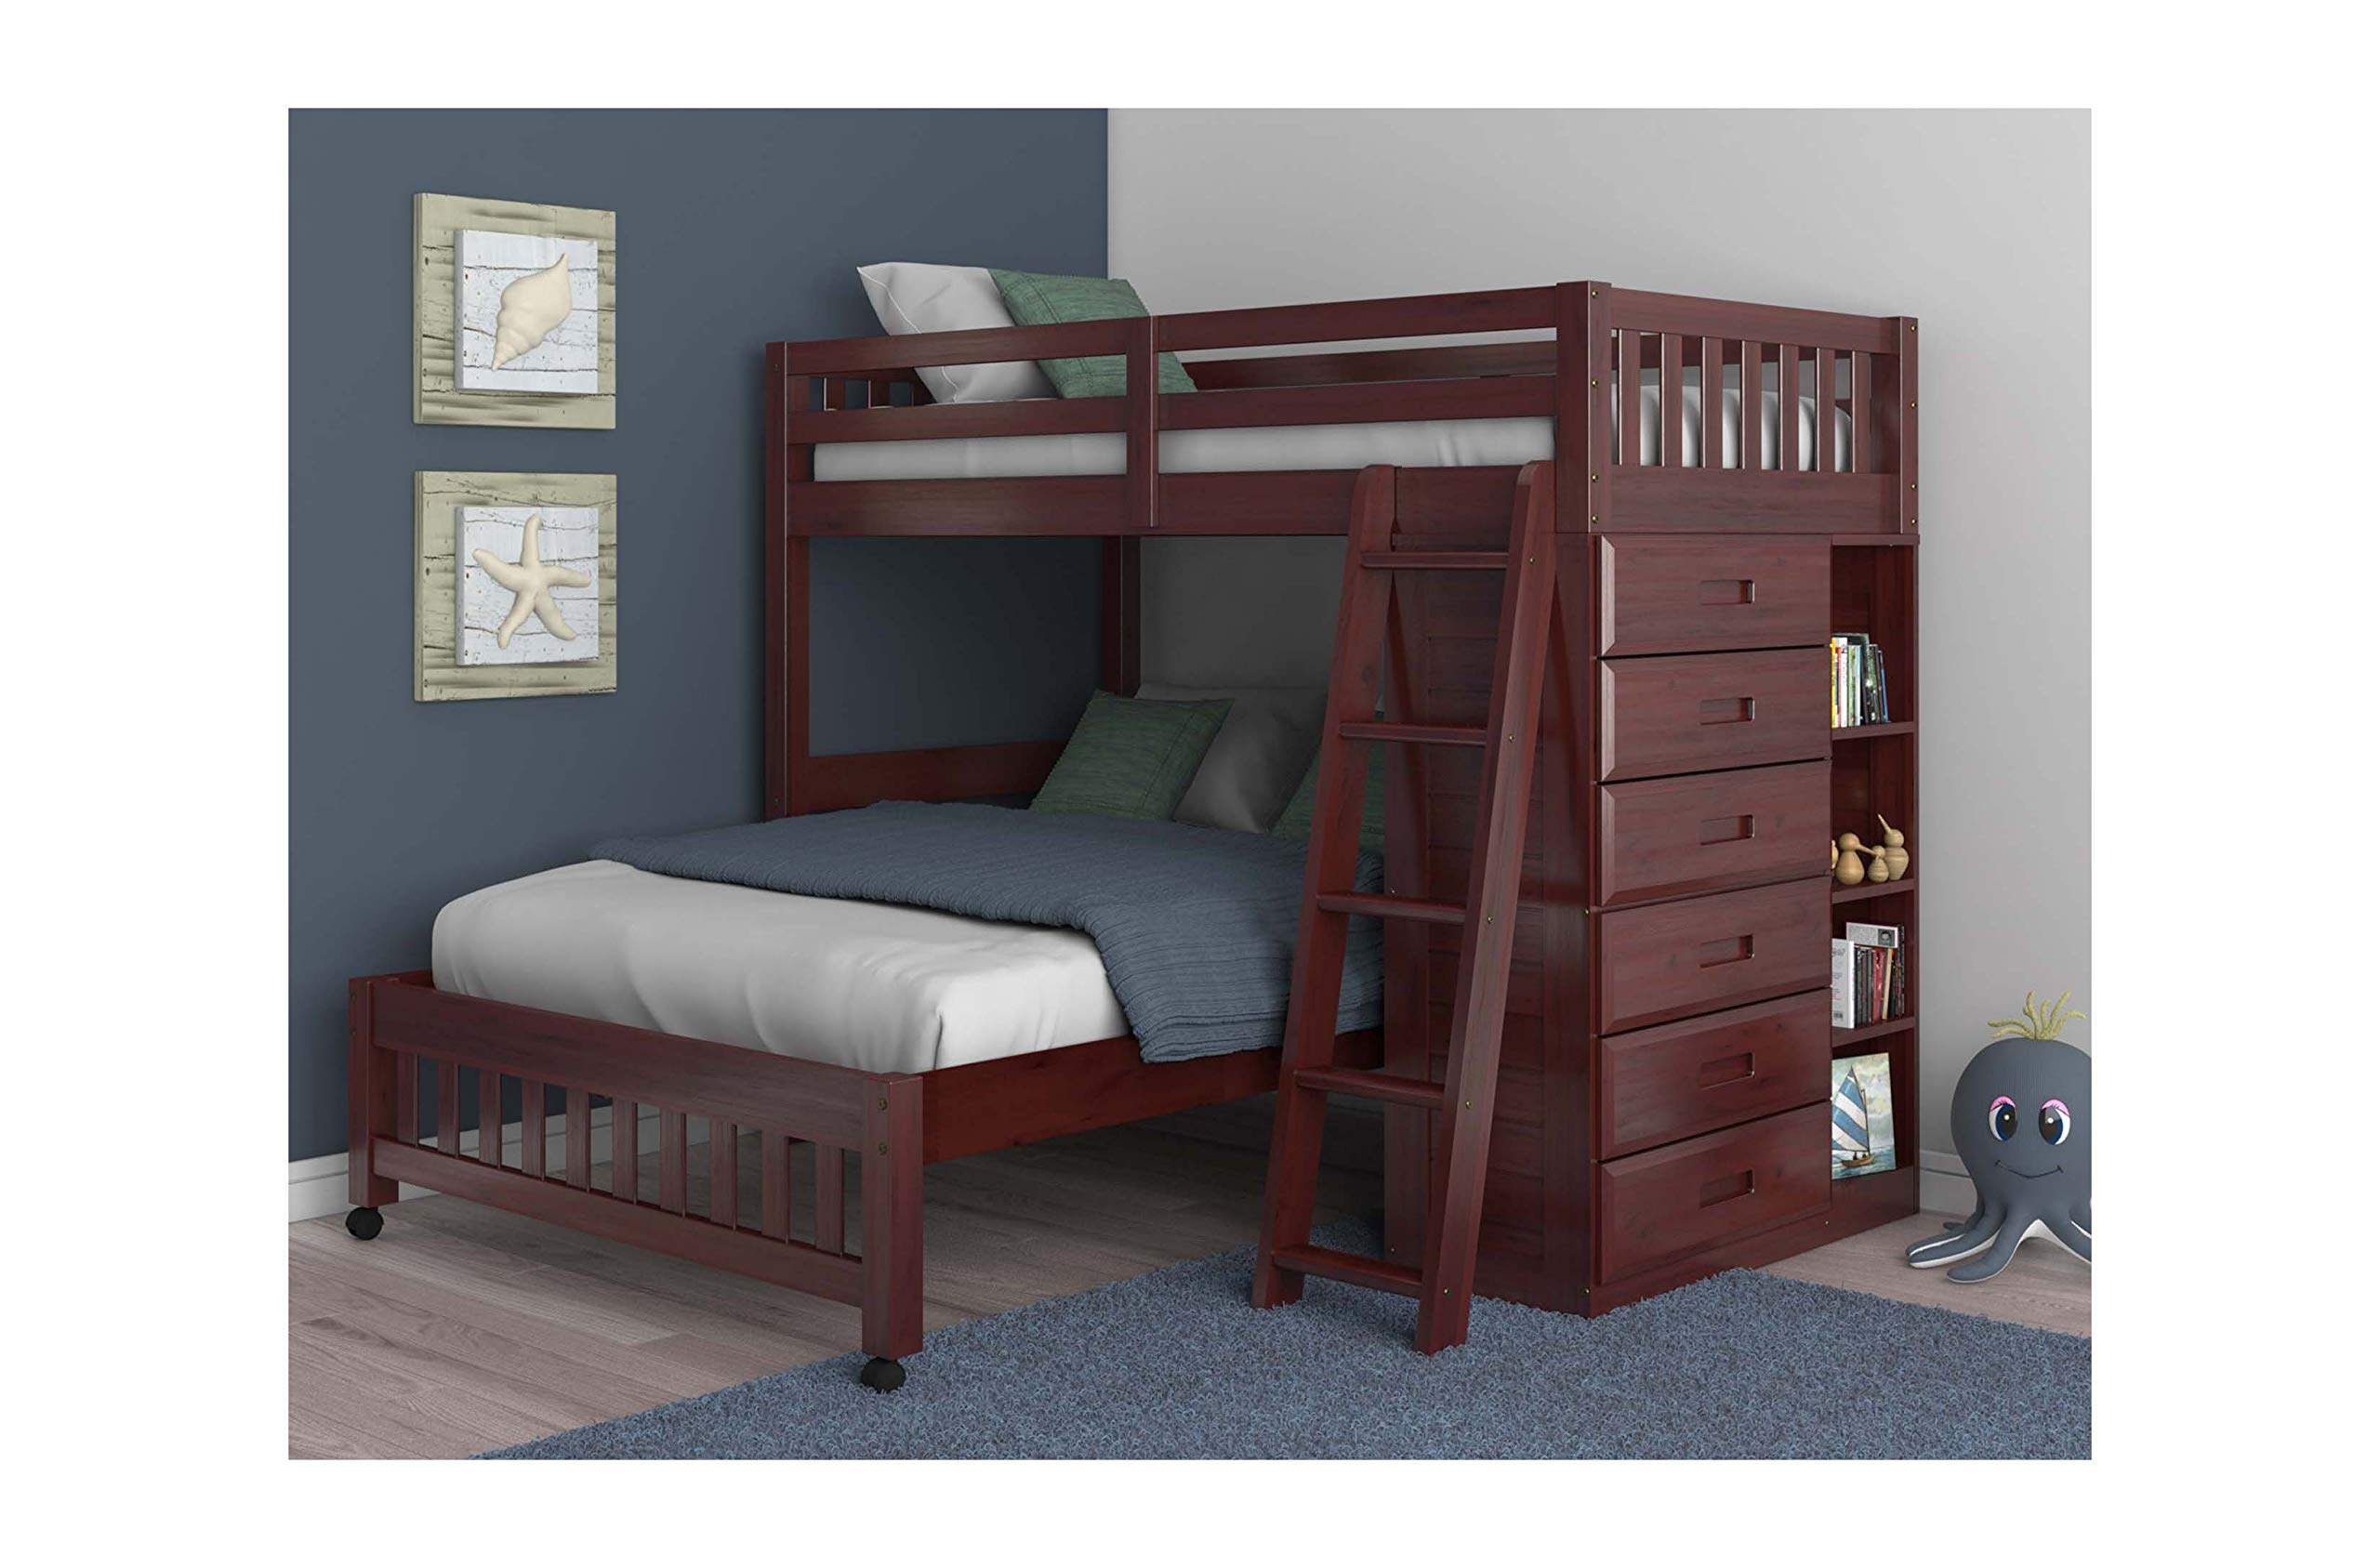 Discovery World Furniture Twin Over Full Loft Bed in Merlot Finish by Discovery World Furniture